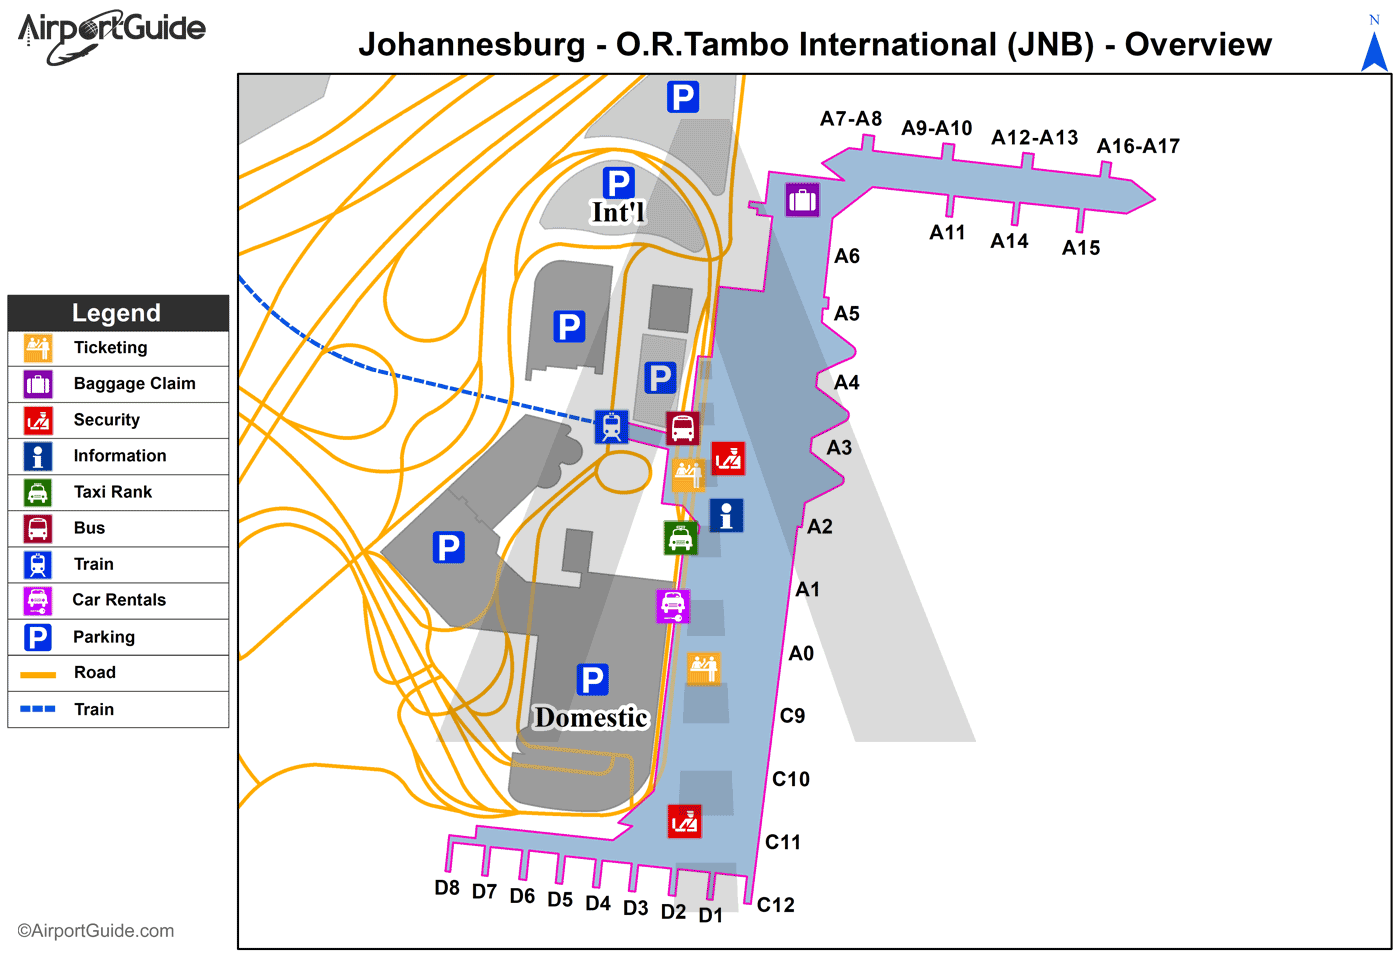 Johannesburg - OR Tambo International (JNB) Airport Terminal Map - Overview